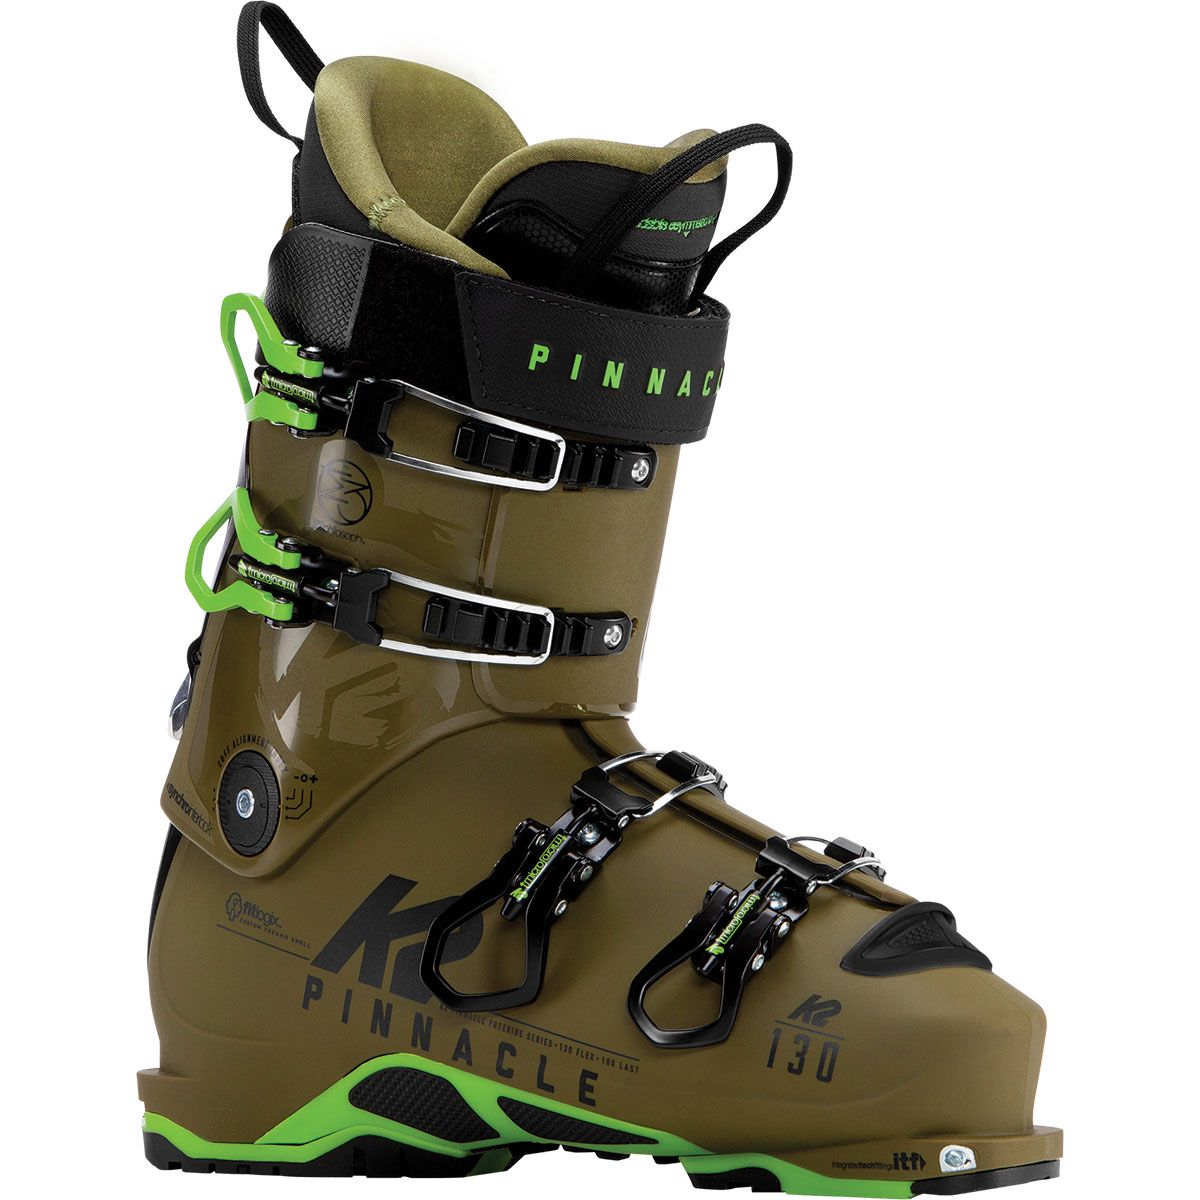 Image of K2 Pinnacle 130 SV Freerideschuhe